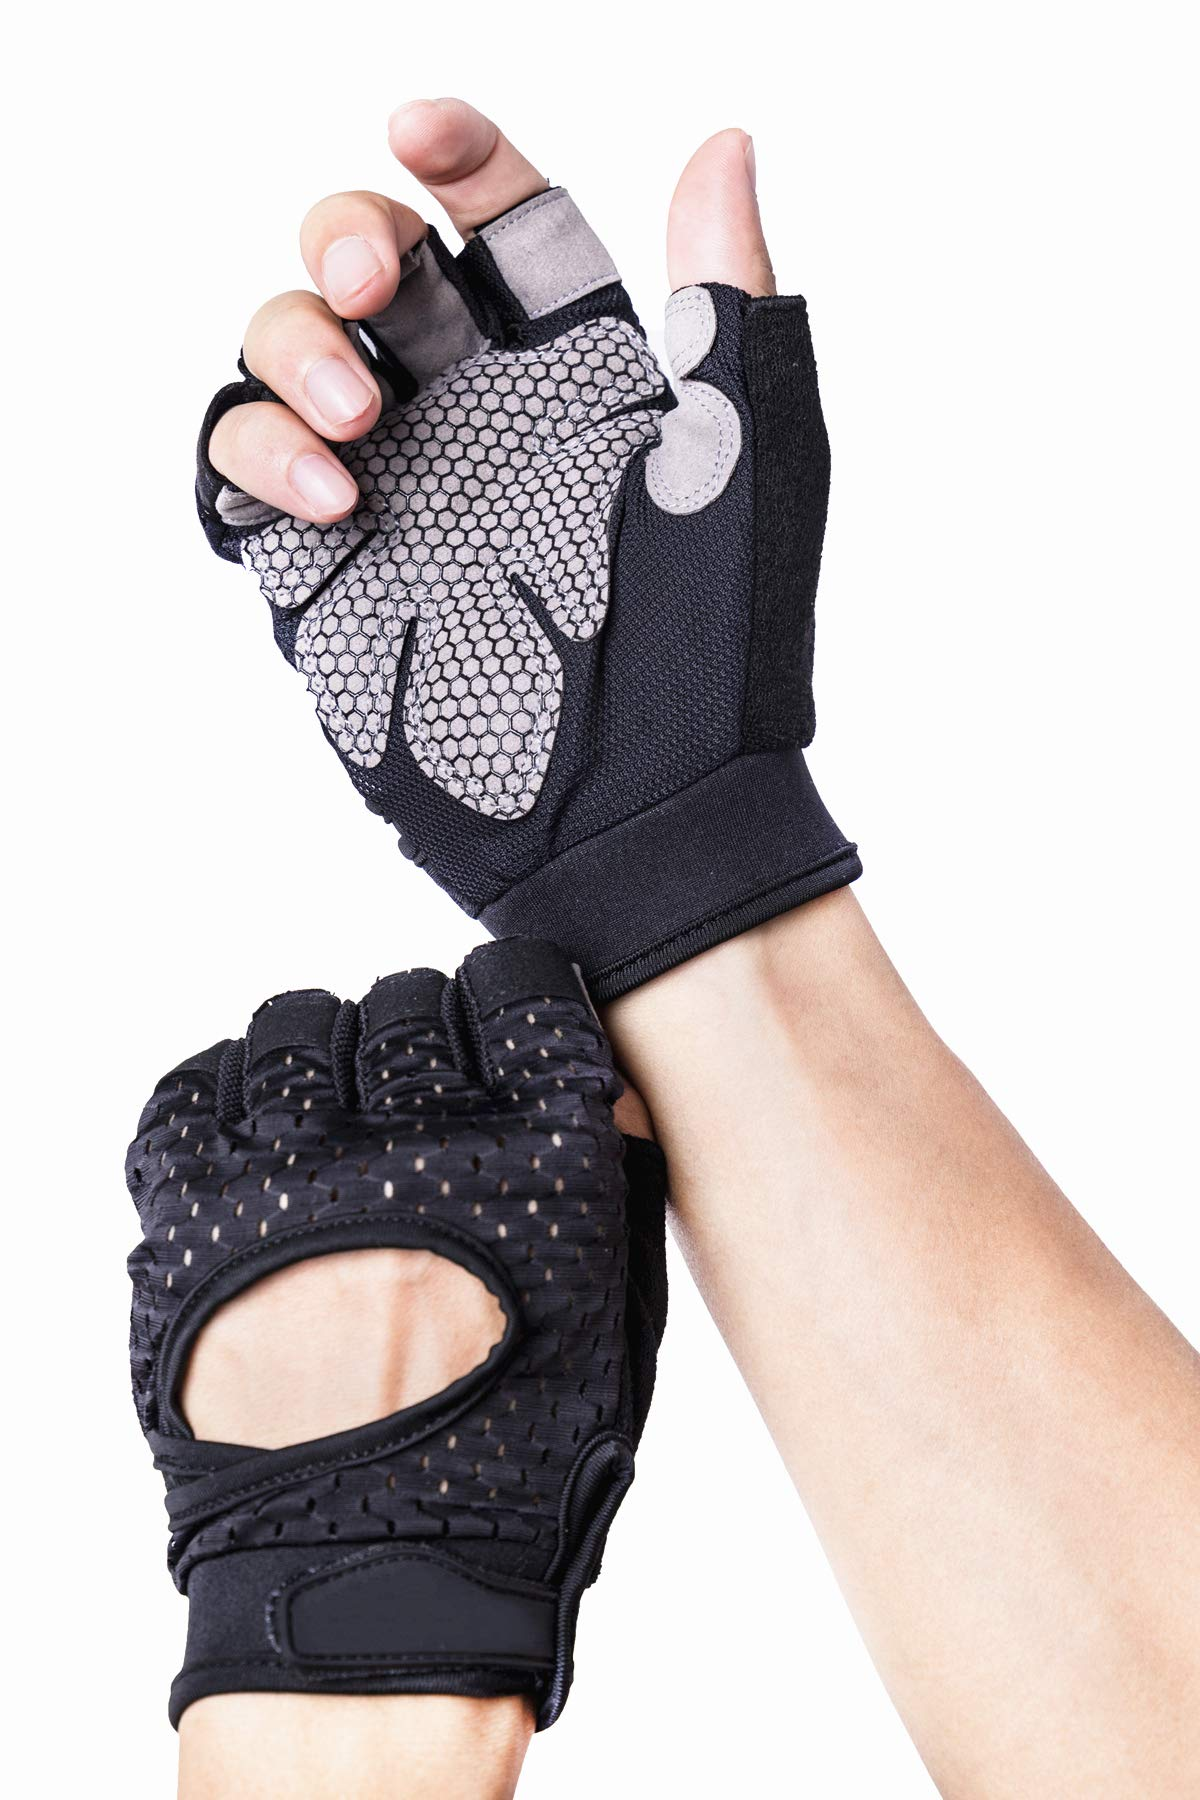 Xiaoai Breathable Ultralight Weight Lifting Sport Gloves, Gym Workout Exercise Gloves Support for Powerlifting, Cross Training, Fitness, Bodybuilding, Best for Men & Women